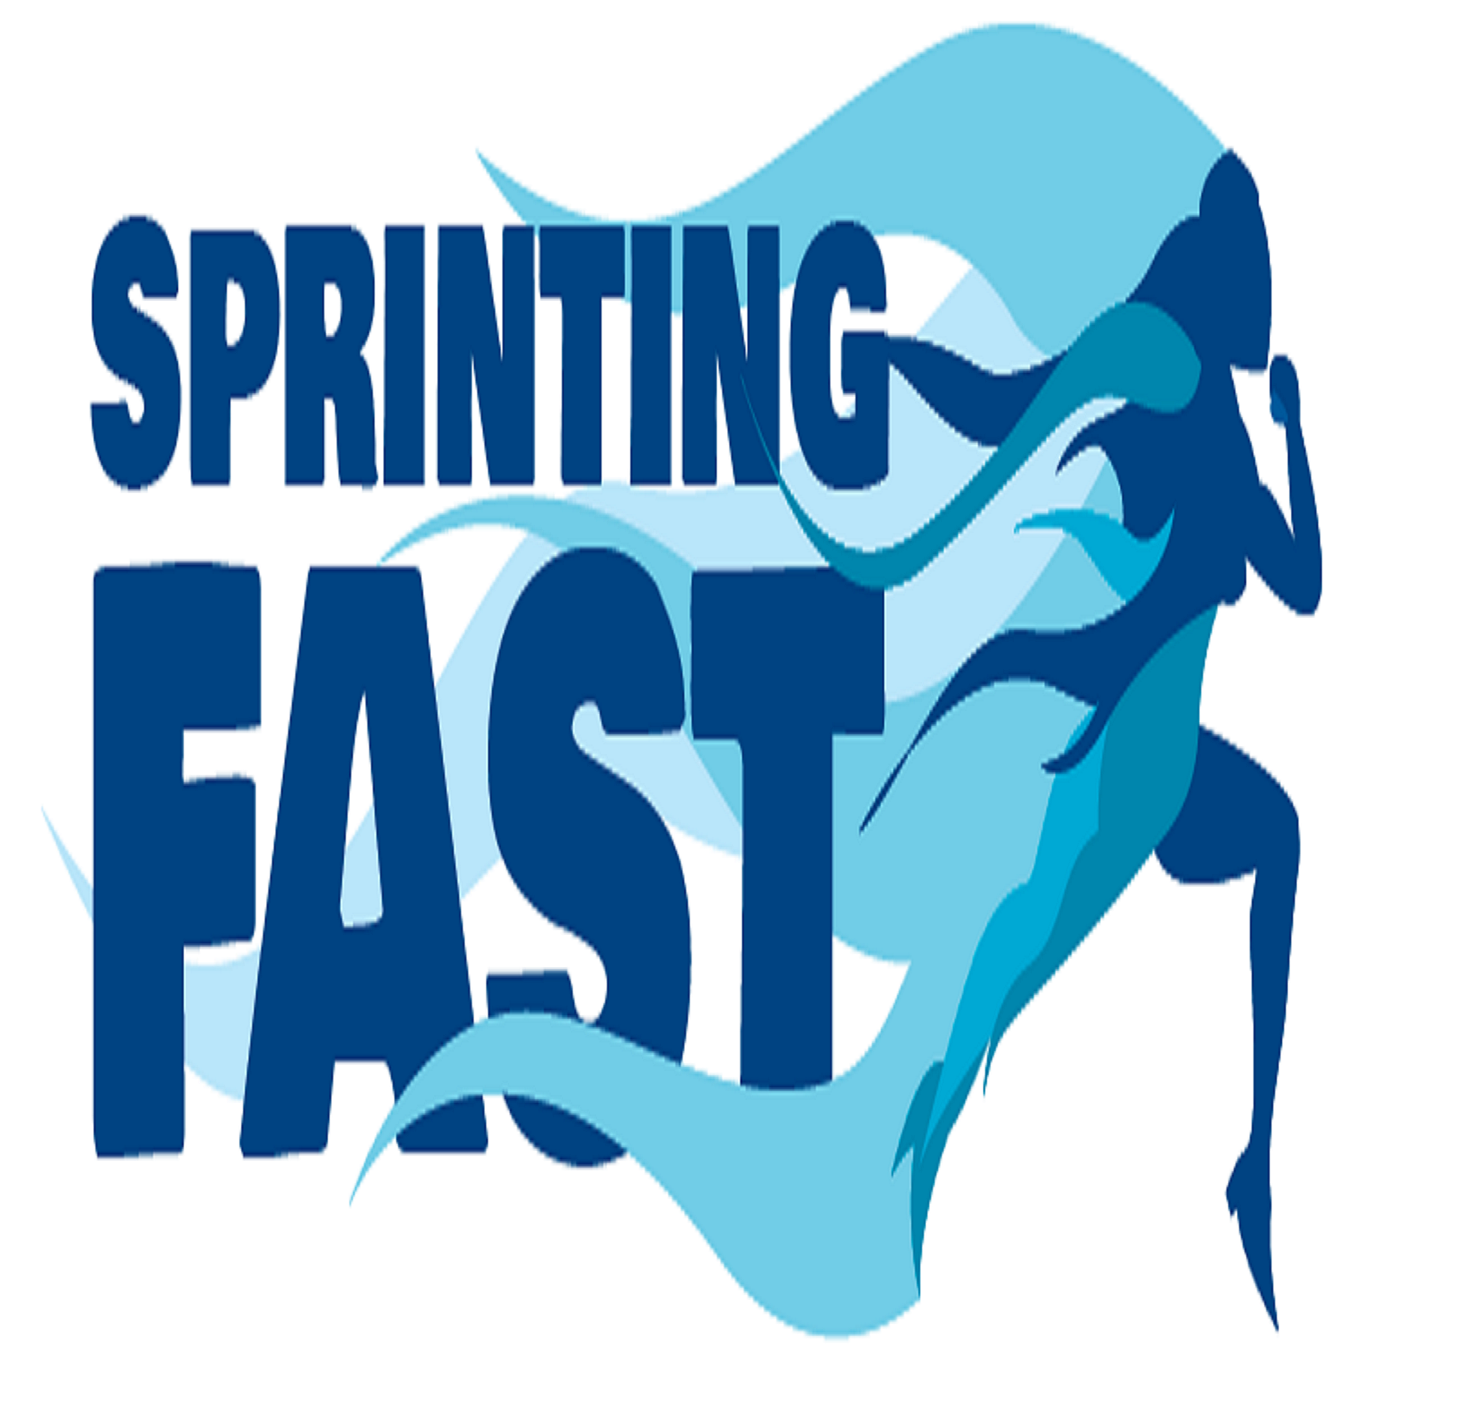 Sprinting Fast